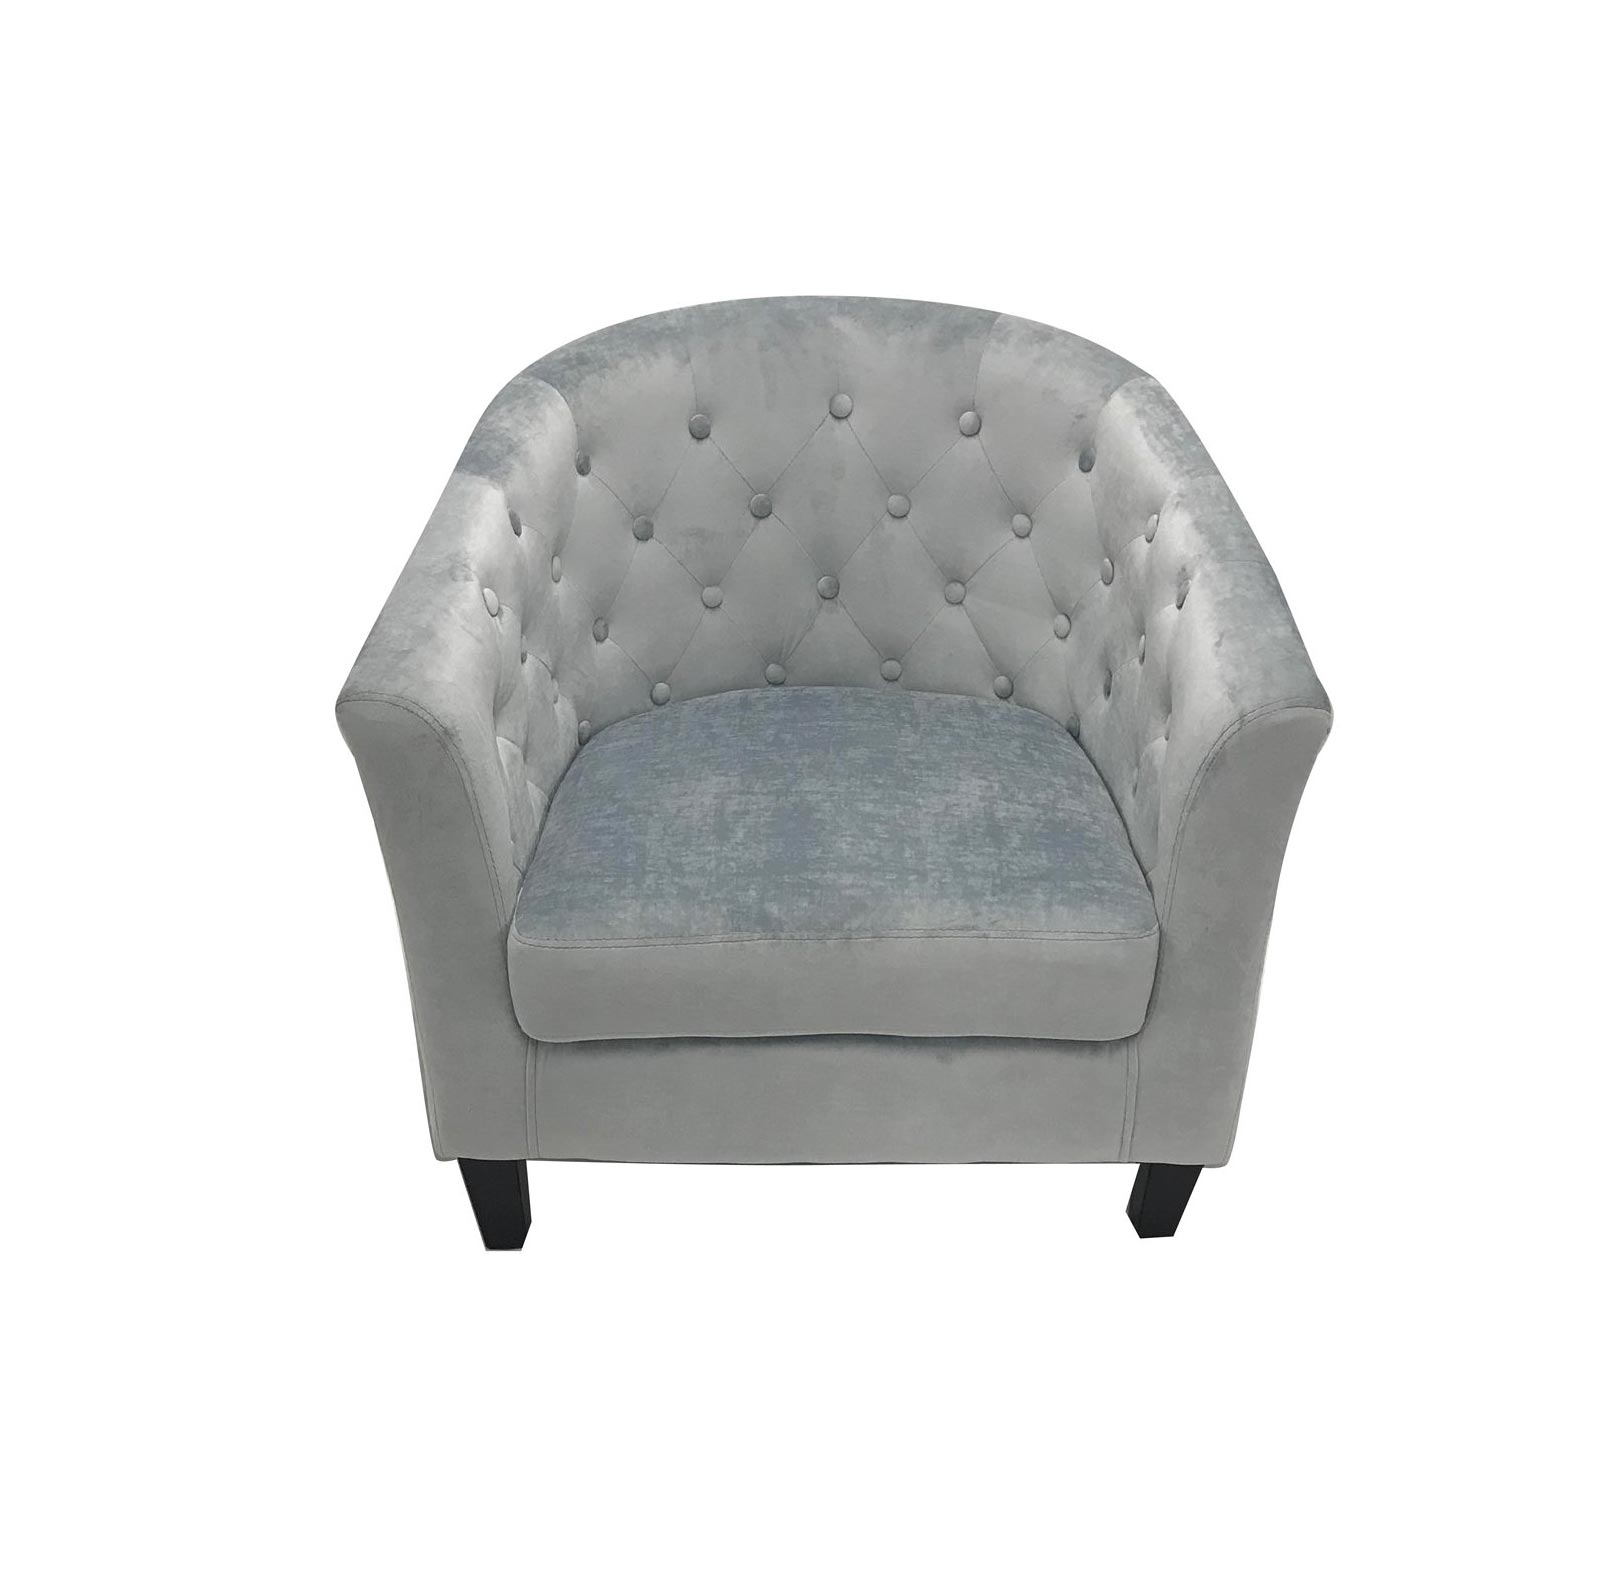 Wondrous Indigo Rose Accent Chair Light Blue Gmtry Best Dining Table And Chair Ideas Images Gmtryco